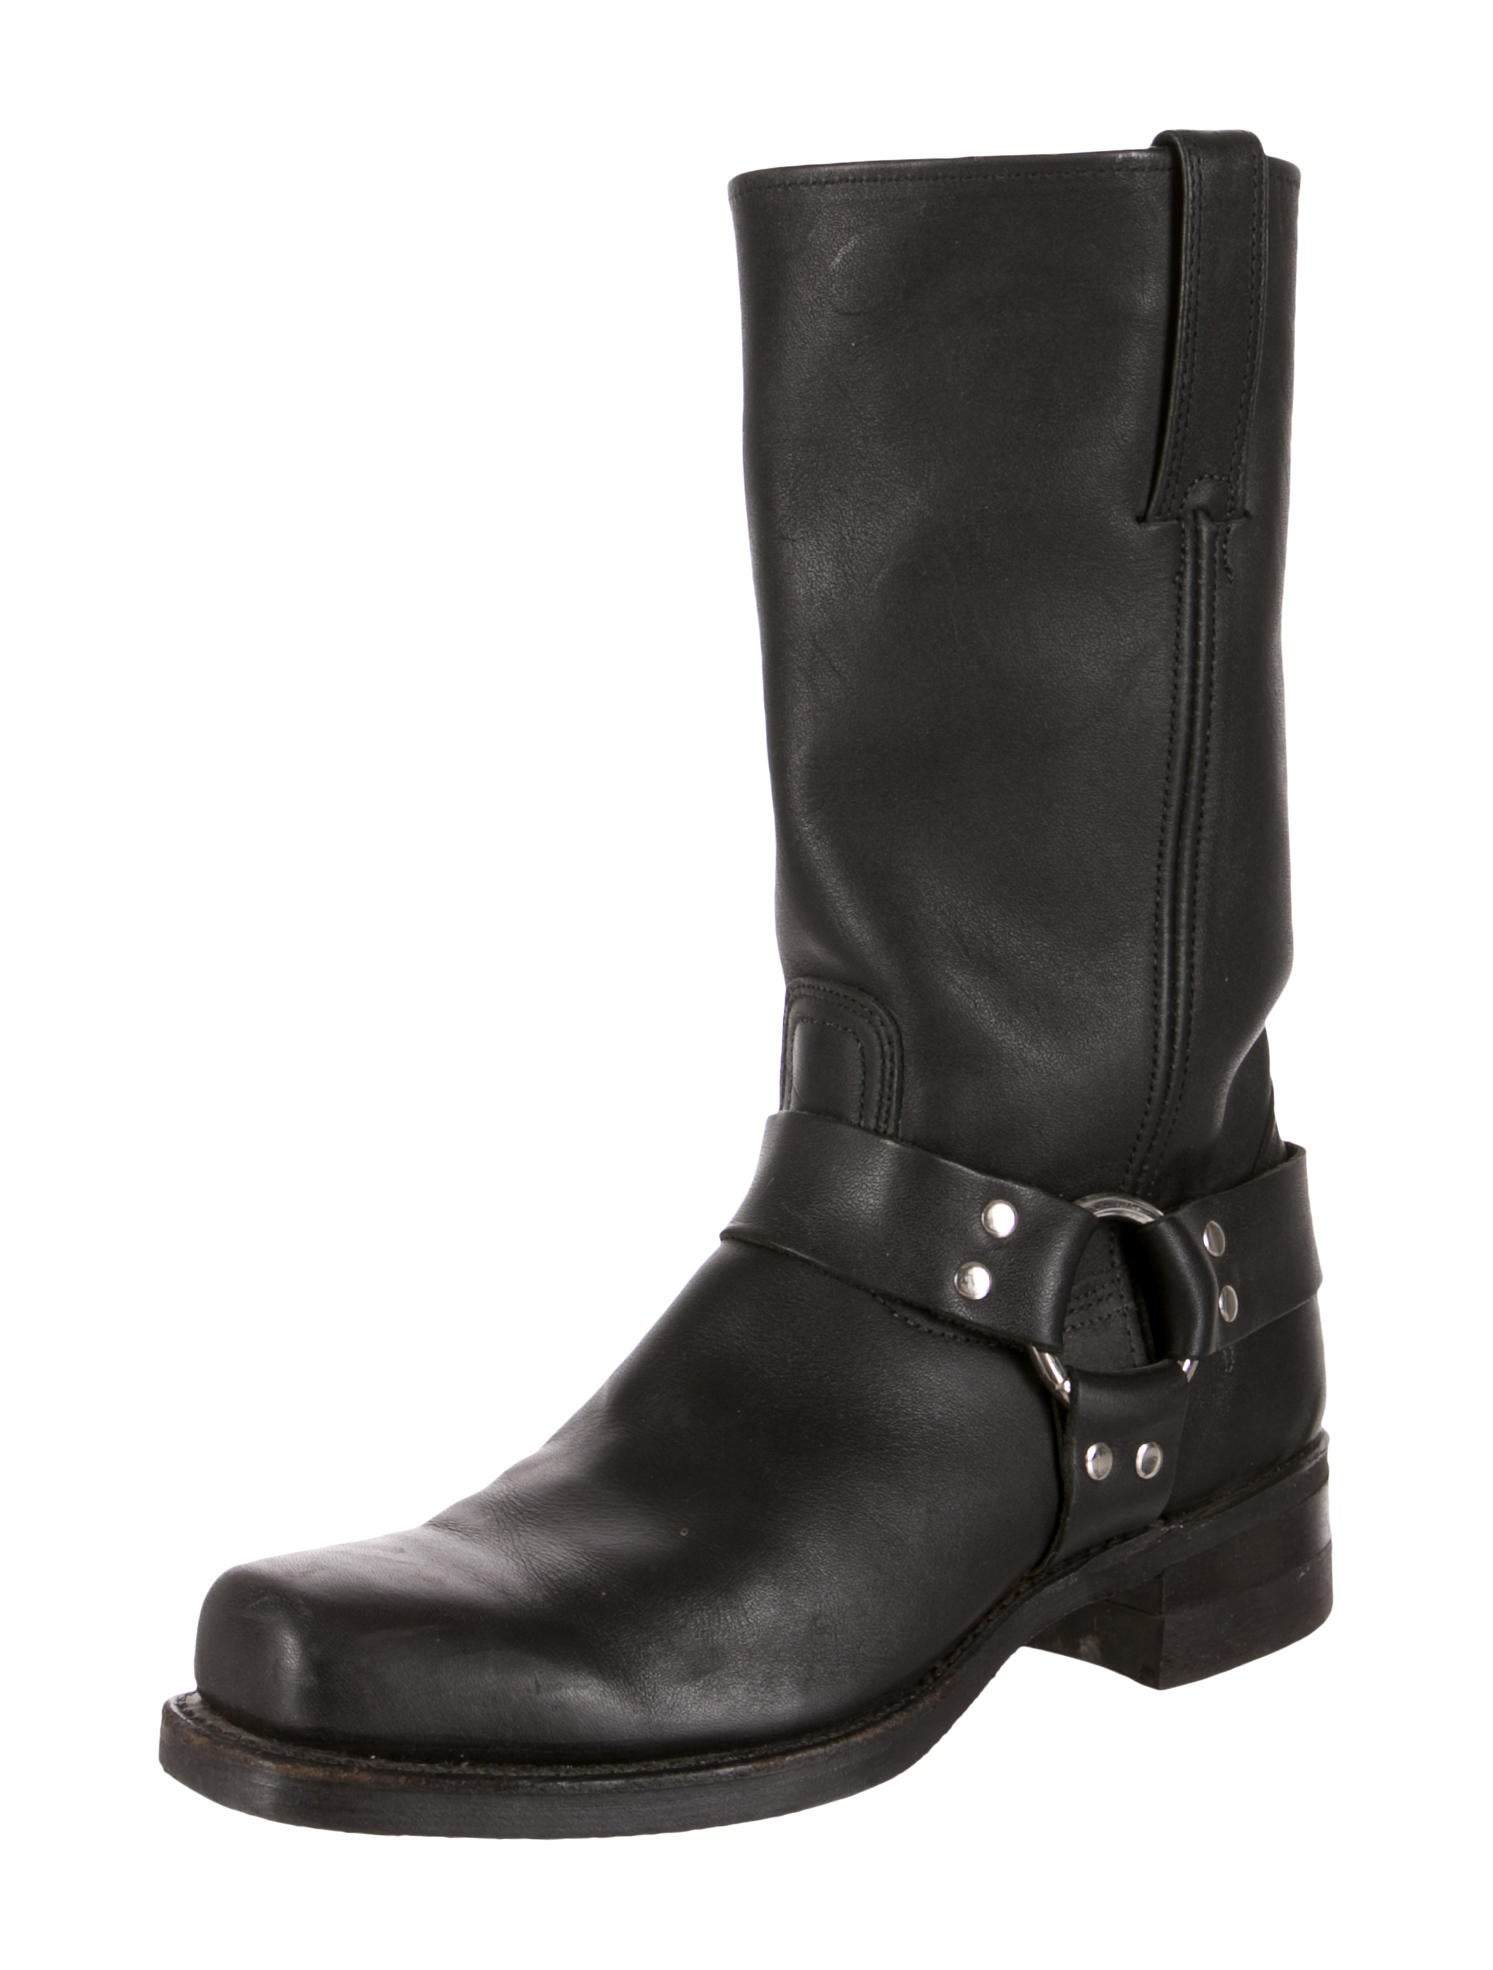 frye boots shoes wf820389 the realreal